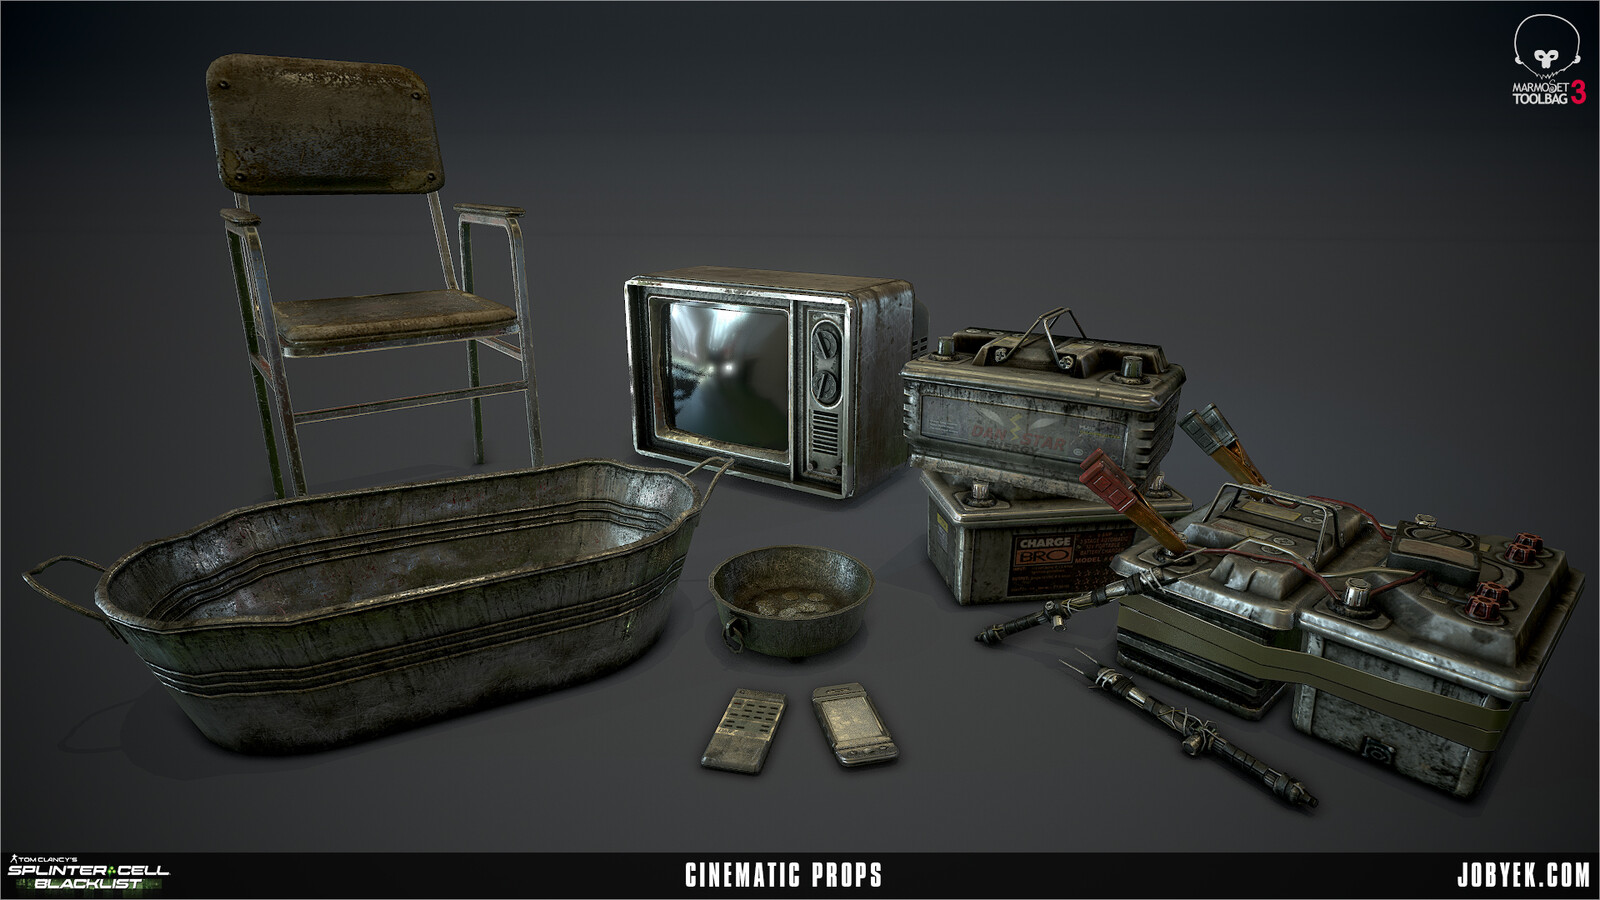 Cinematic props render